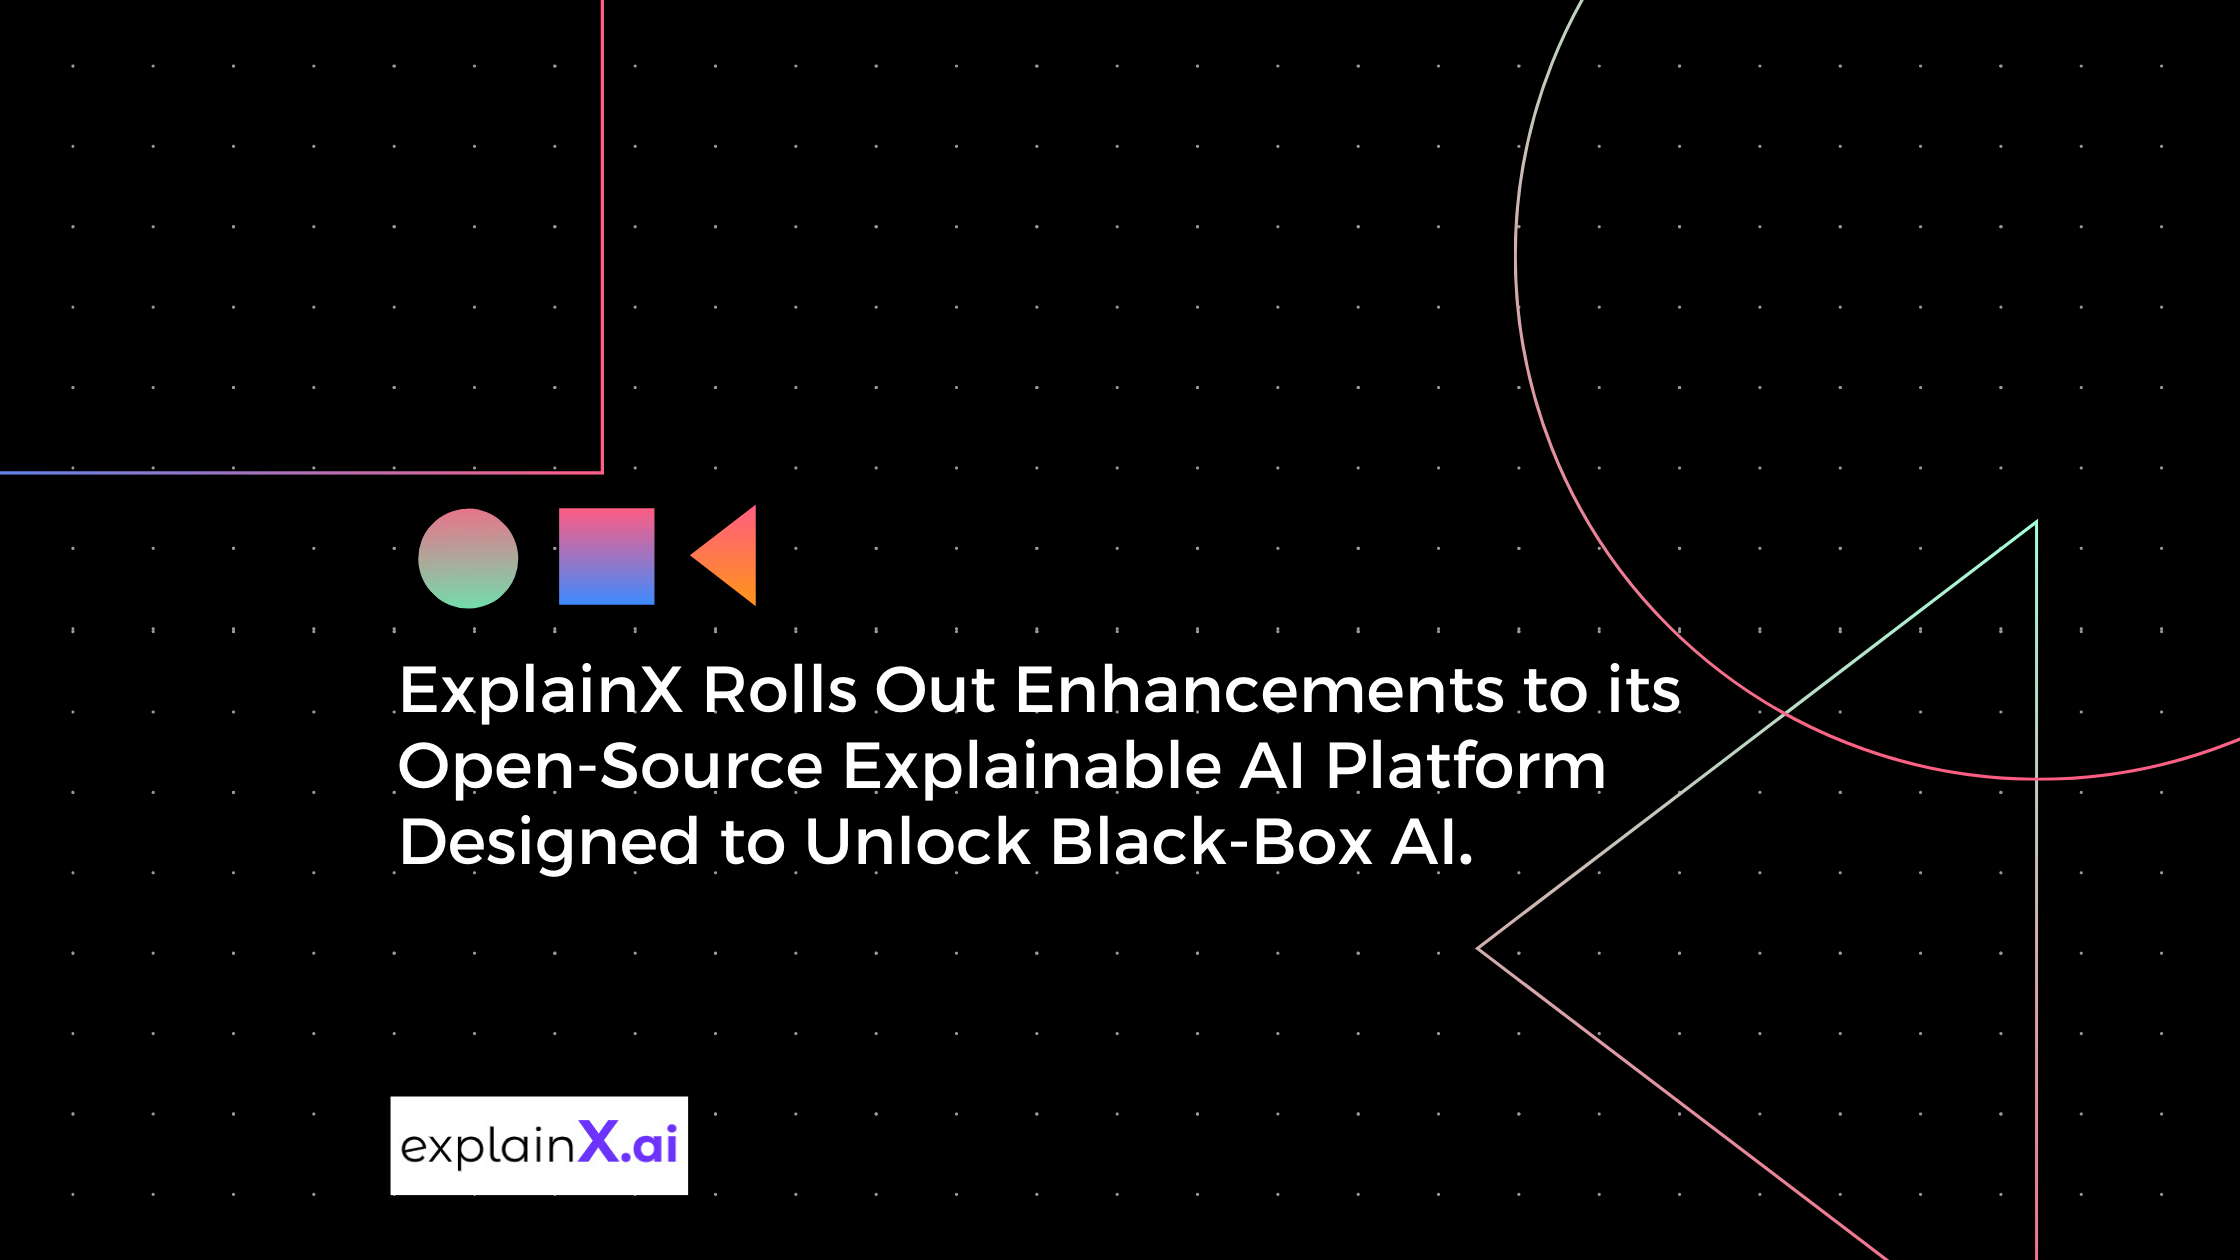 ExplainX Rolls Out Enhancements to its Open-Source Explainable AI Platform Designed to Unlock Black-Box AI